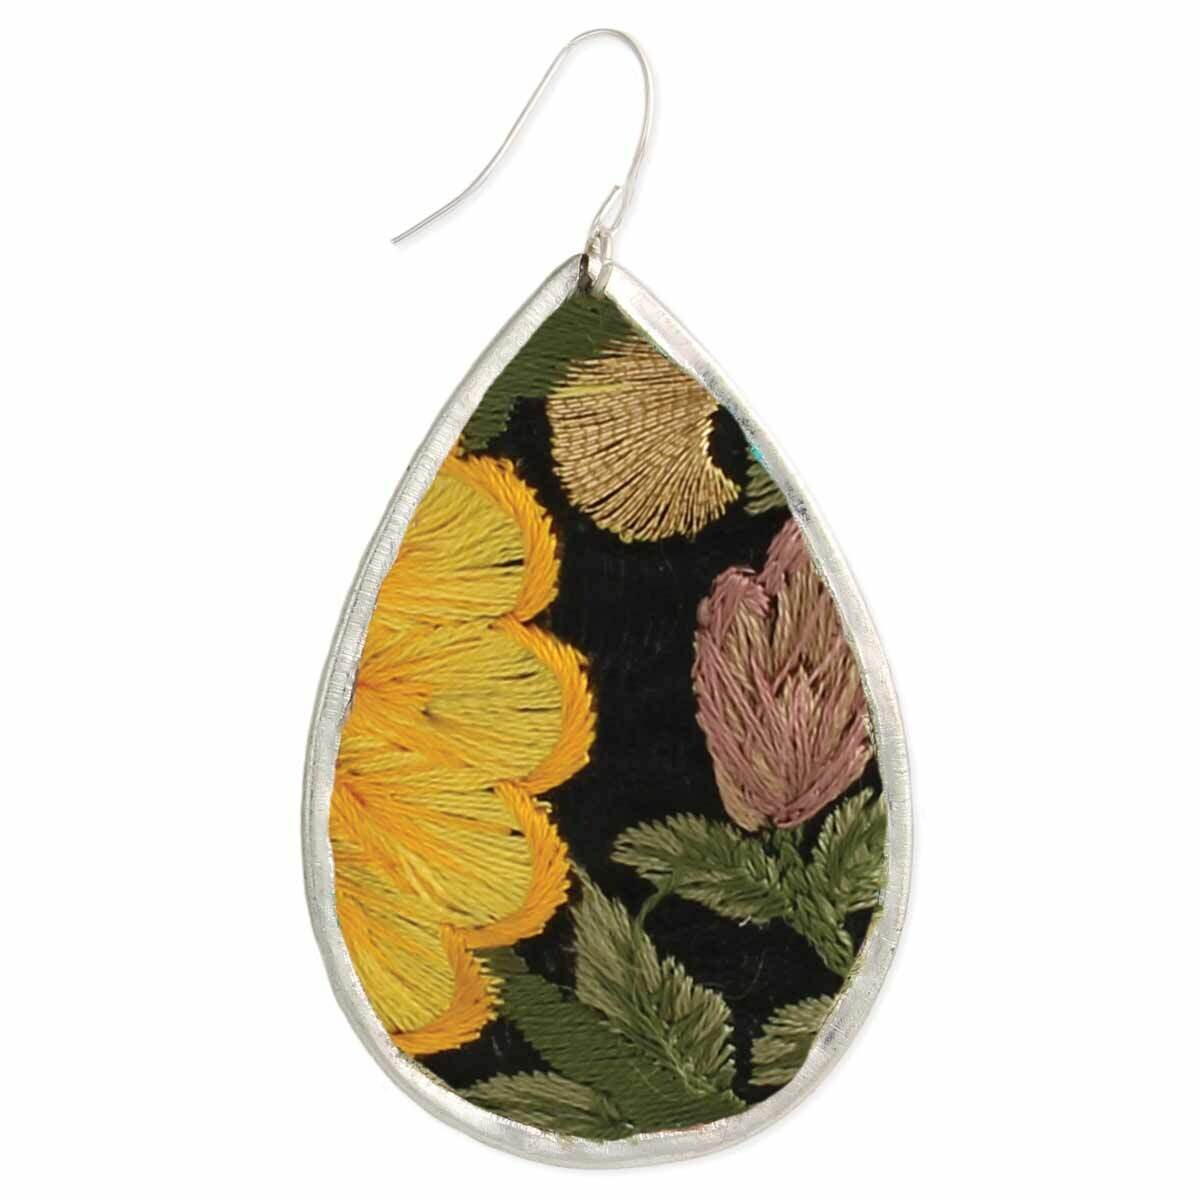 BK YLW Embroidered Earring